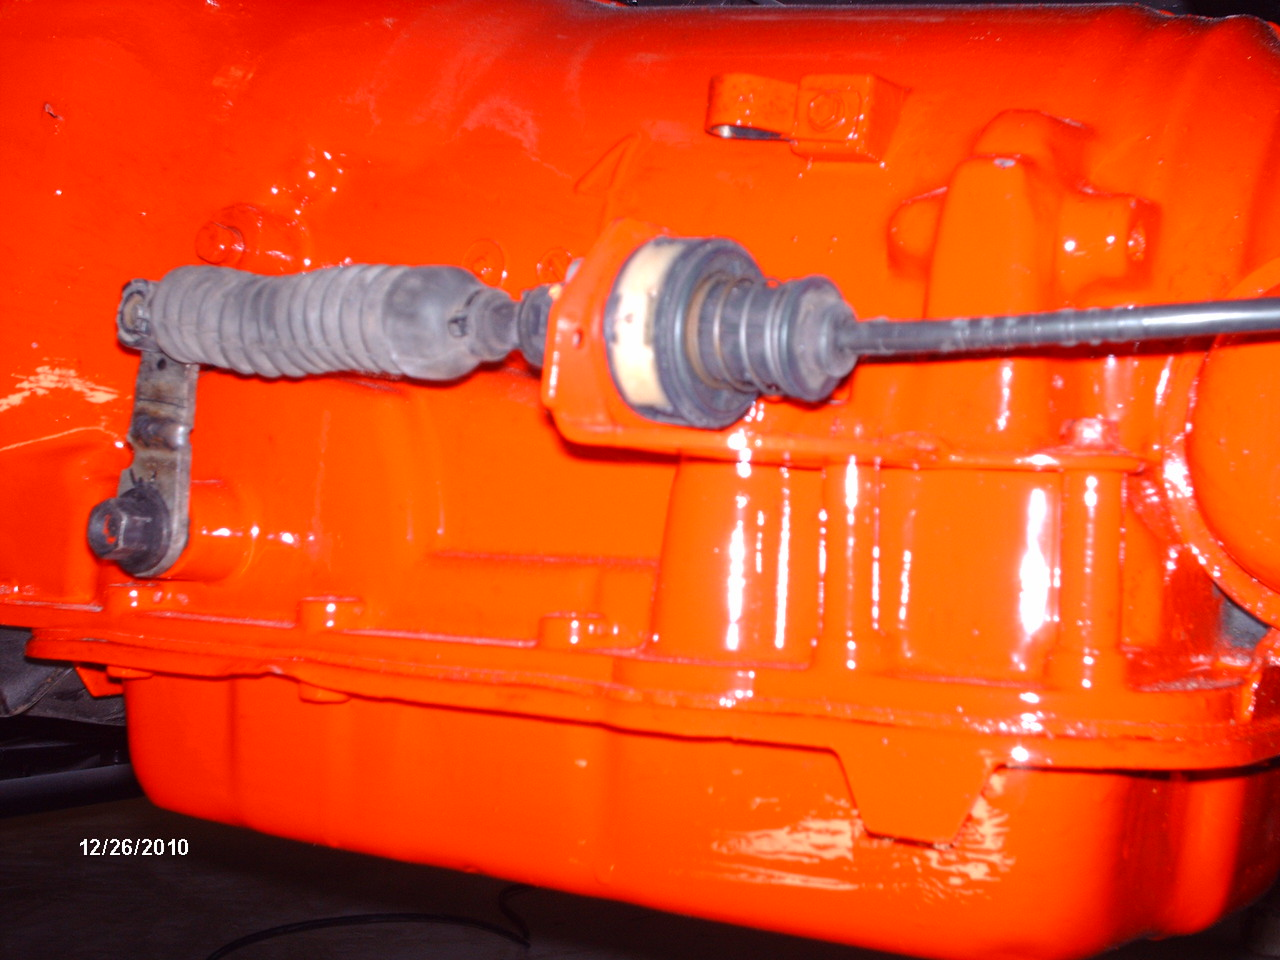 shifter cable is out of an early 90`s chevy S-10 blazer with auto on the floor, cable is about  8 feet long